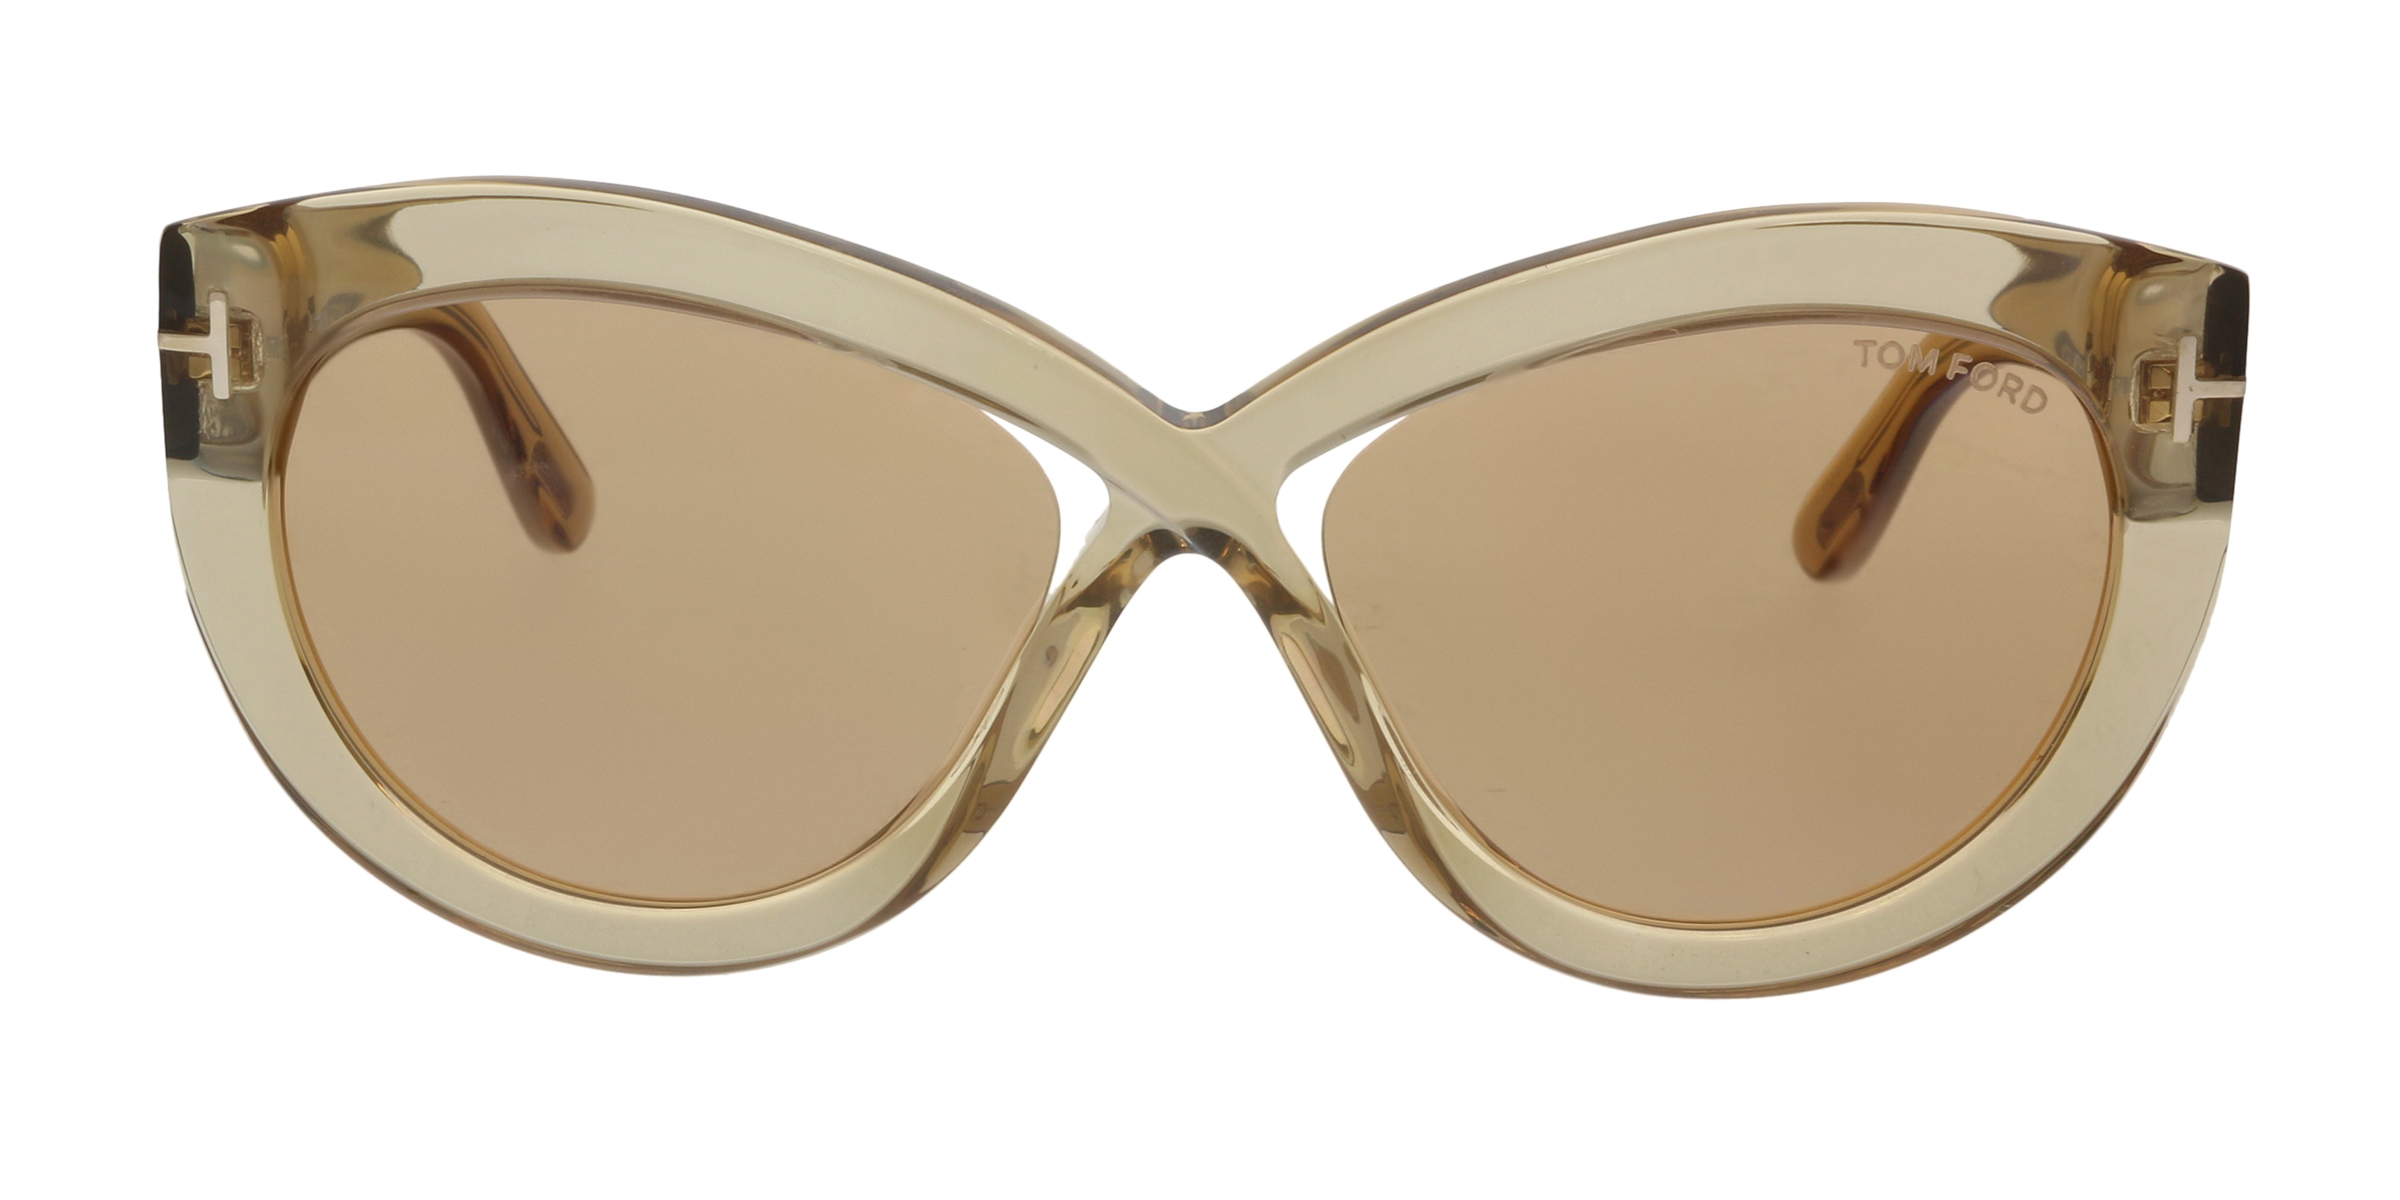 4c3b5ce4b56f4 Tom Ford FT0577 45E Diane-02 Shiny Light Brown Butterfly Sunglasses ...